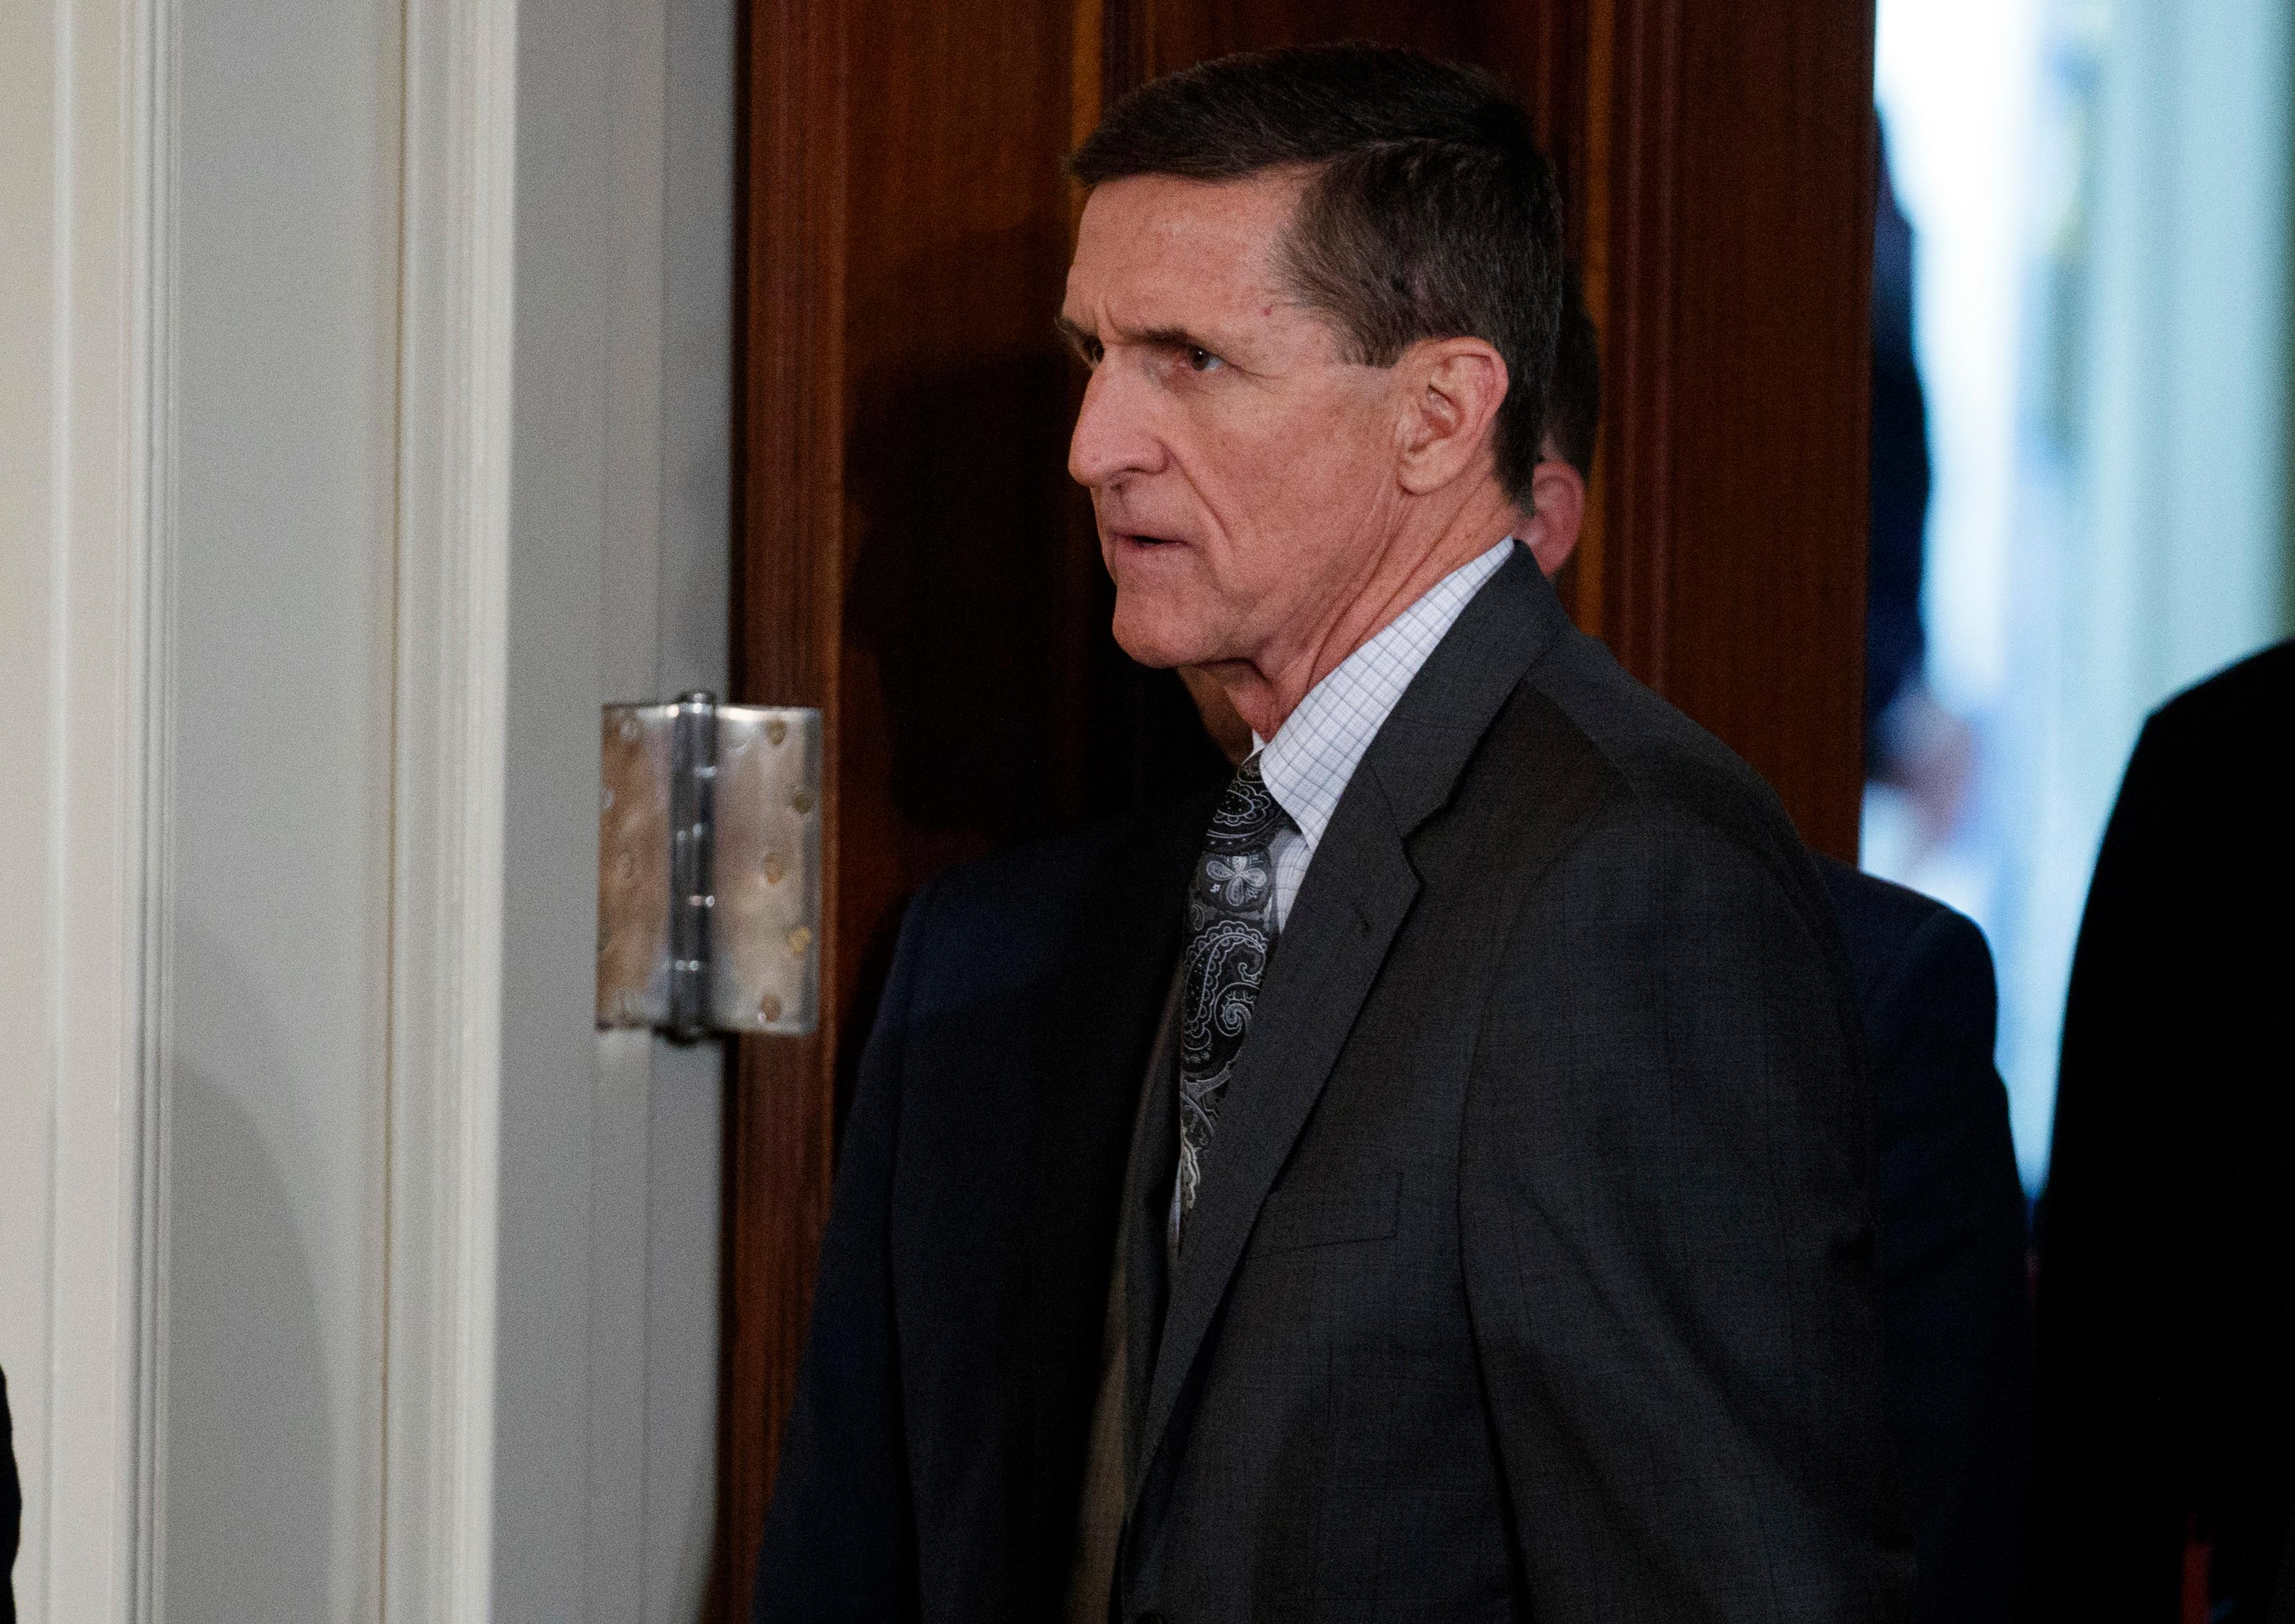 FILE - In this Feb. 13, 2017 file photo, Mike Flynn arrives for a news conference in the East Room of the White House in Washington. The former national security adviser will invoke his Fifth Amendment protection against self-incrimination on Monday, May 22, 2017, as he notifies the Senate Intelligence committee that he will not comply with a subpoena seeking documents. (AP Photo/Evan Vucci, File)